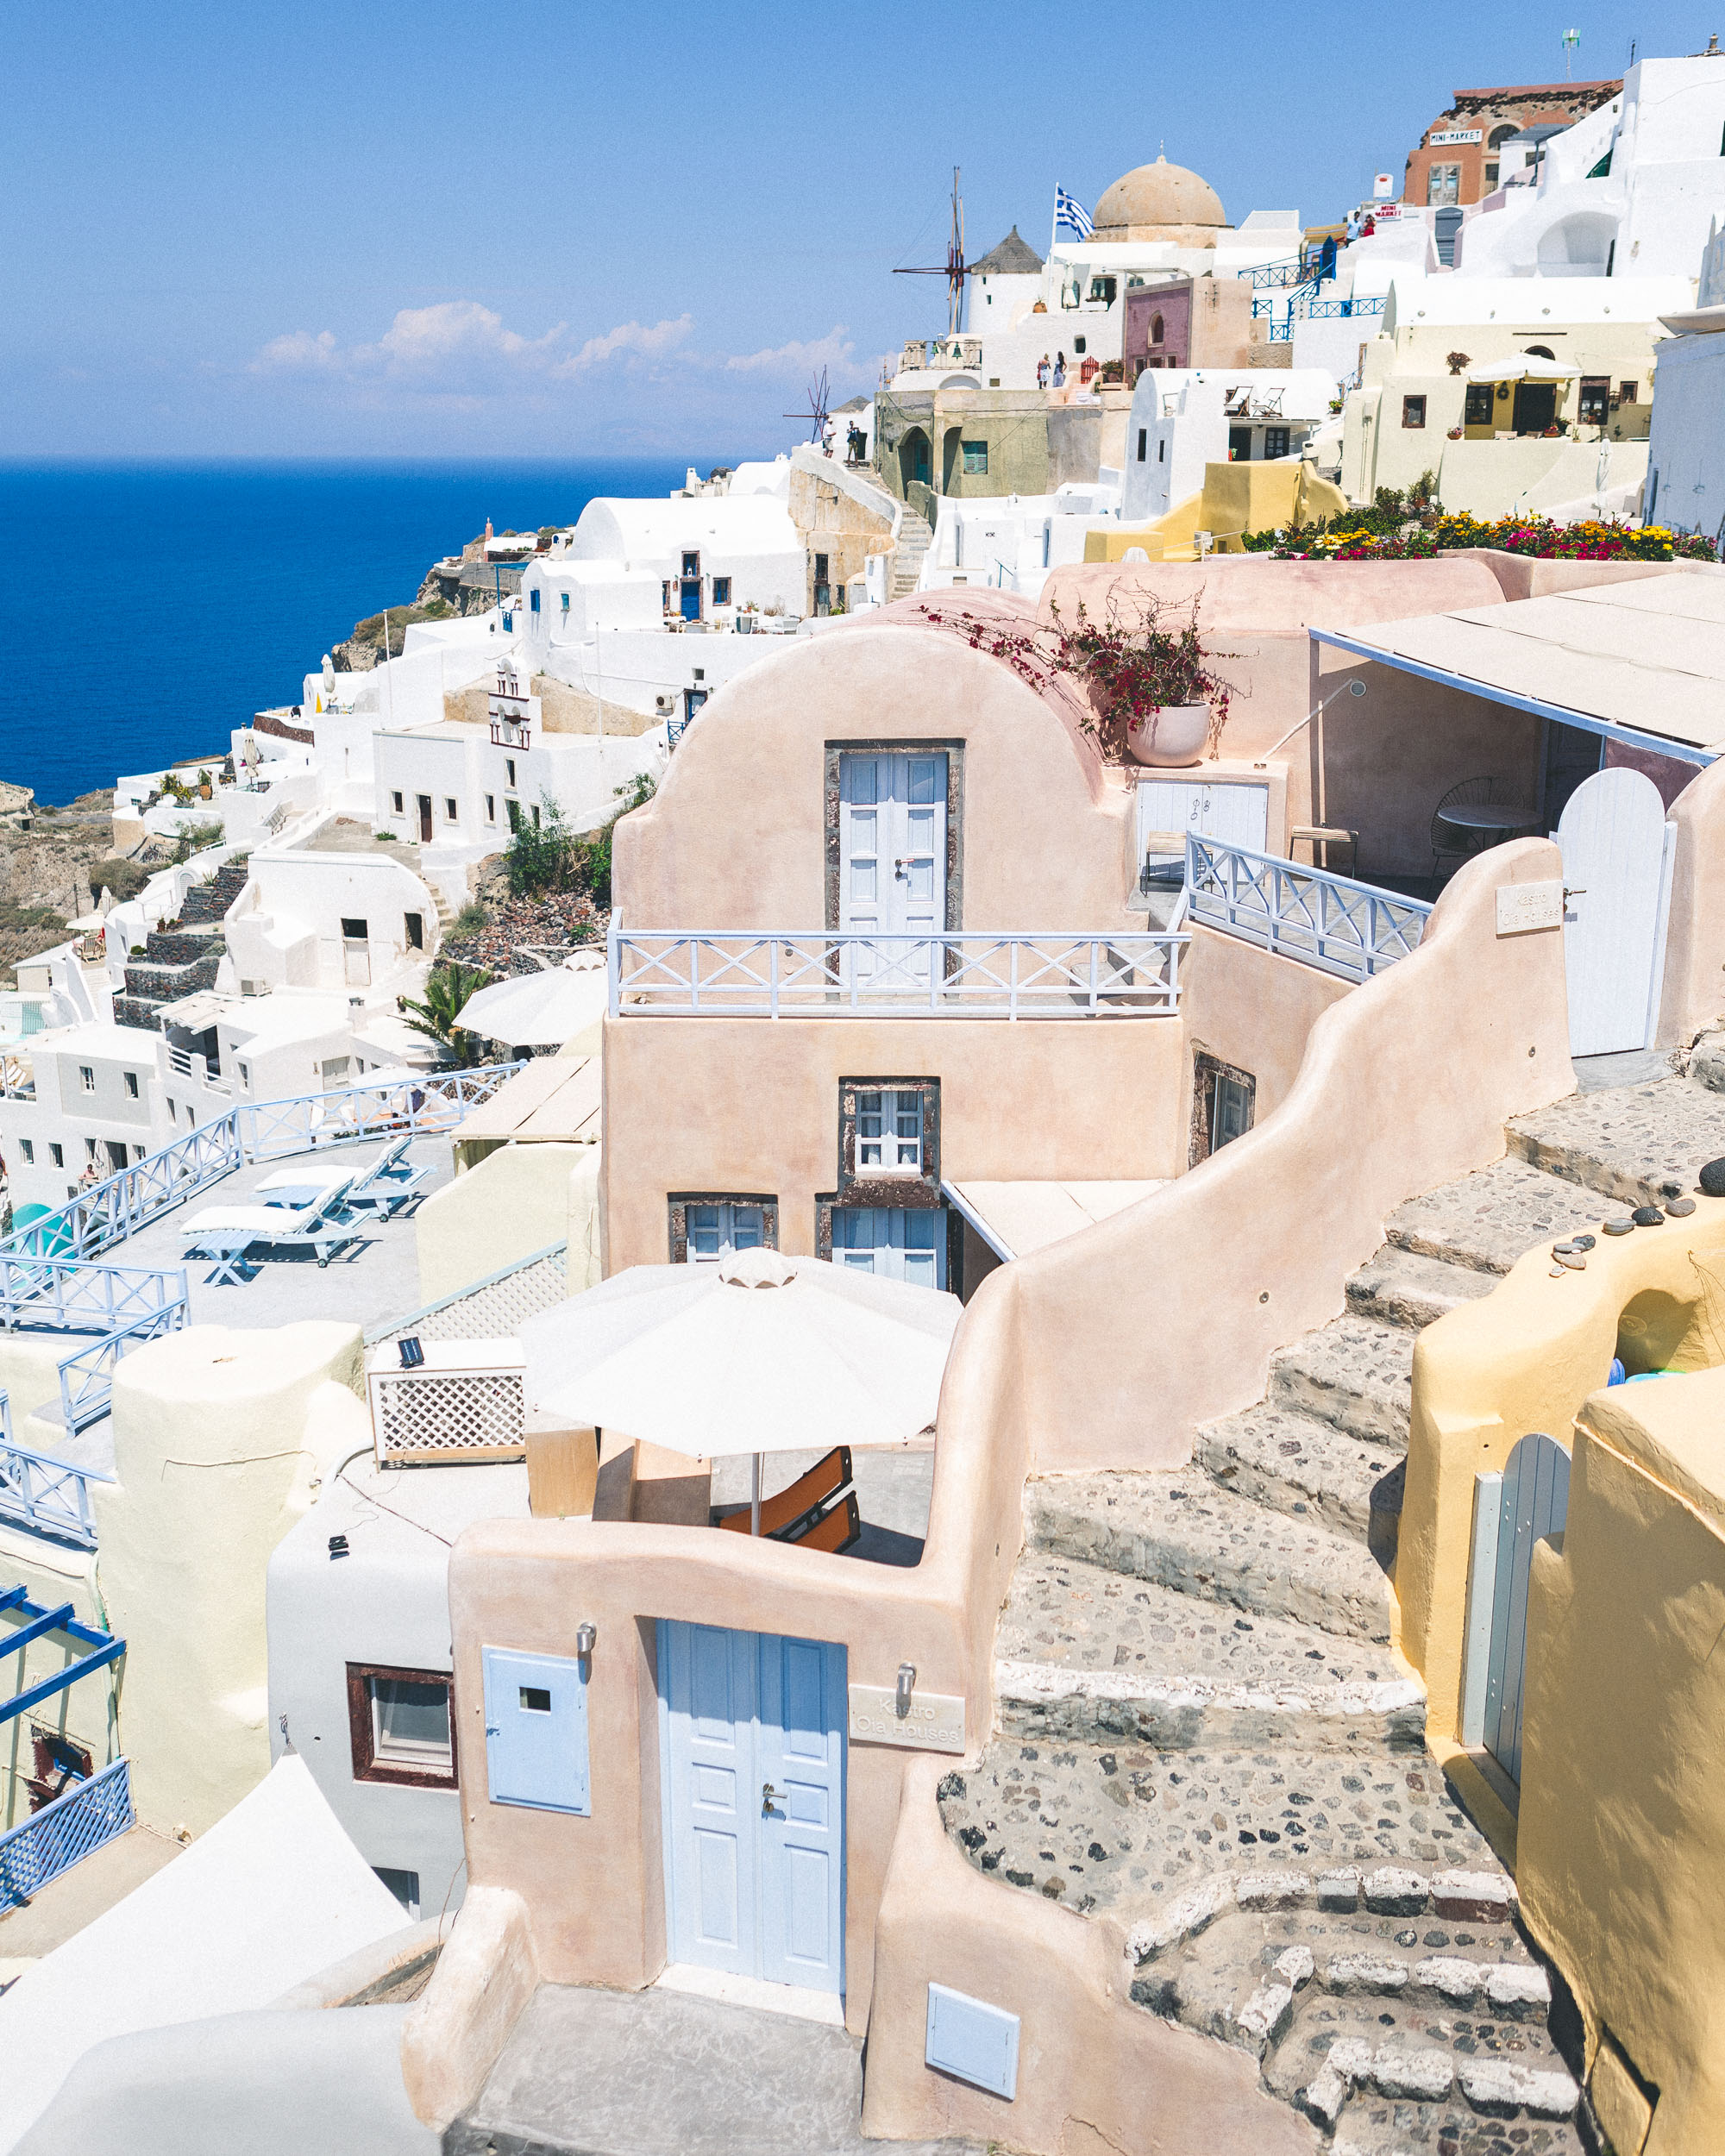 Pink, white and blue buildings of oia, santorini, greece